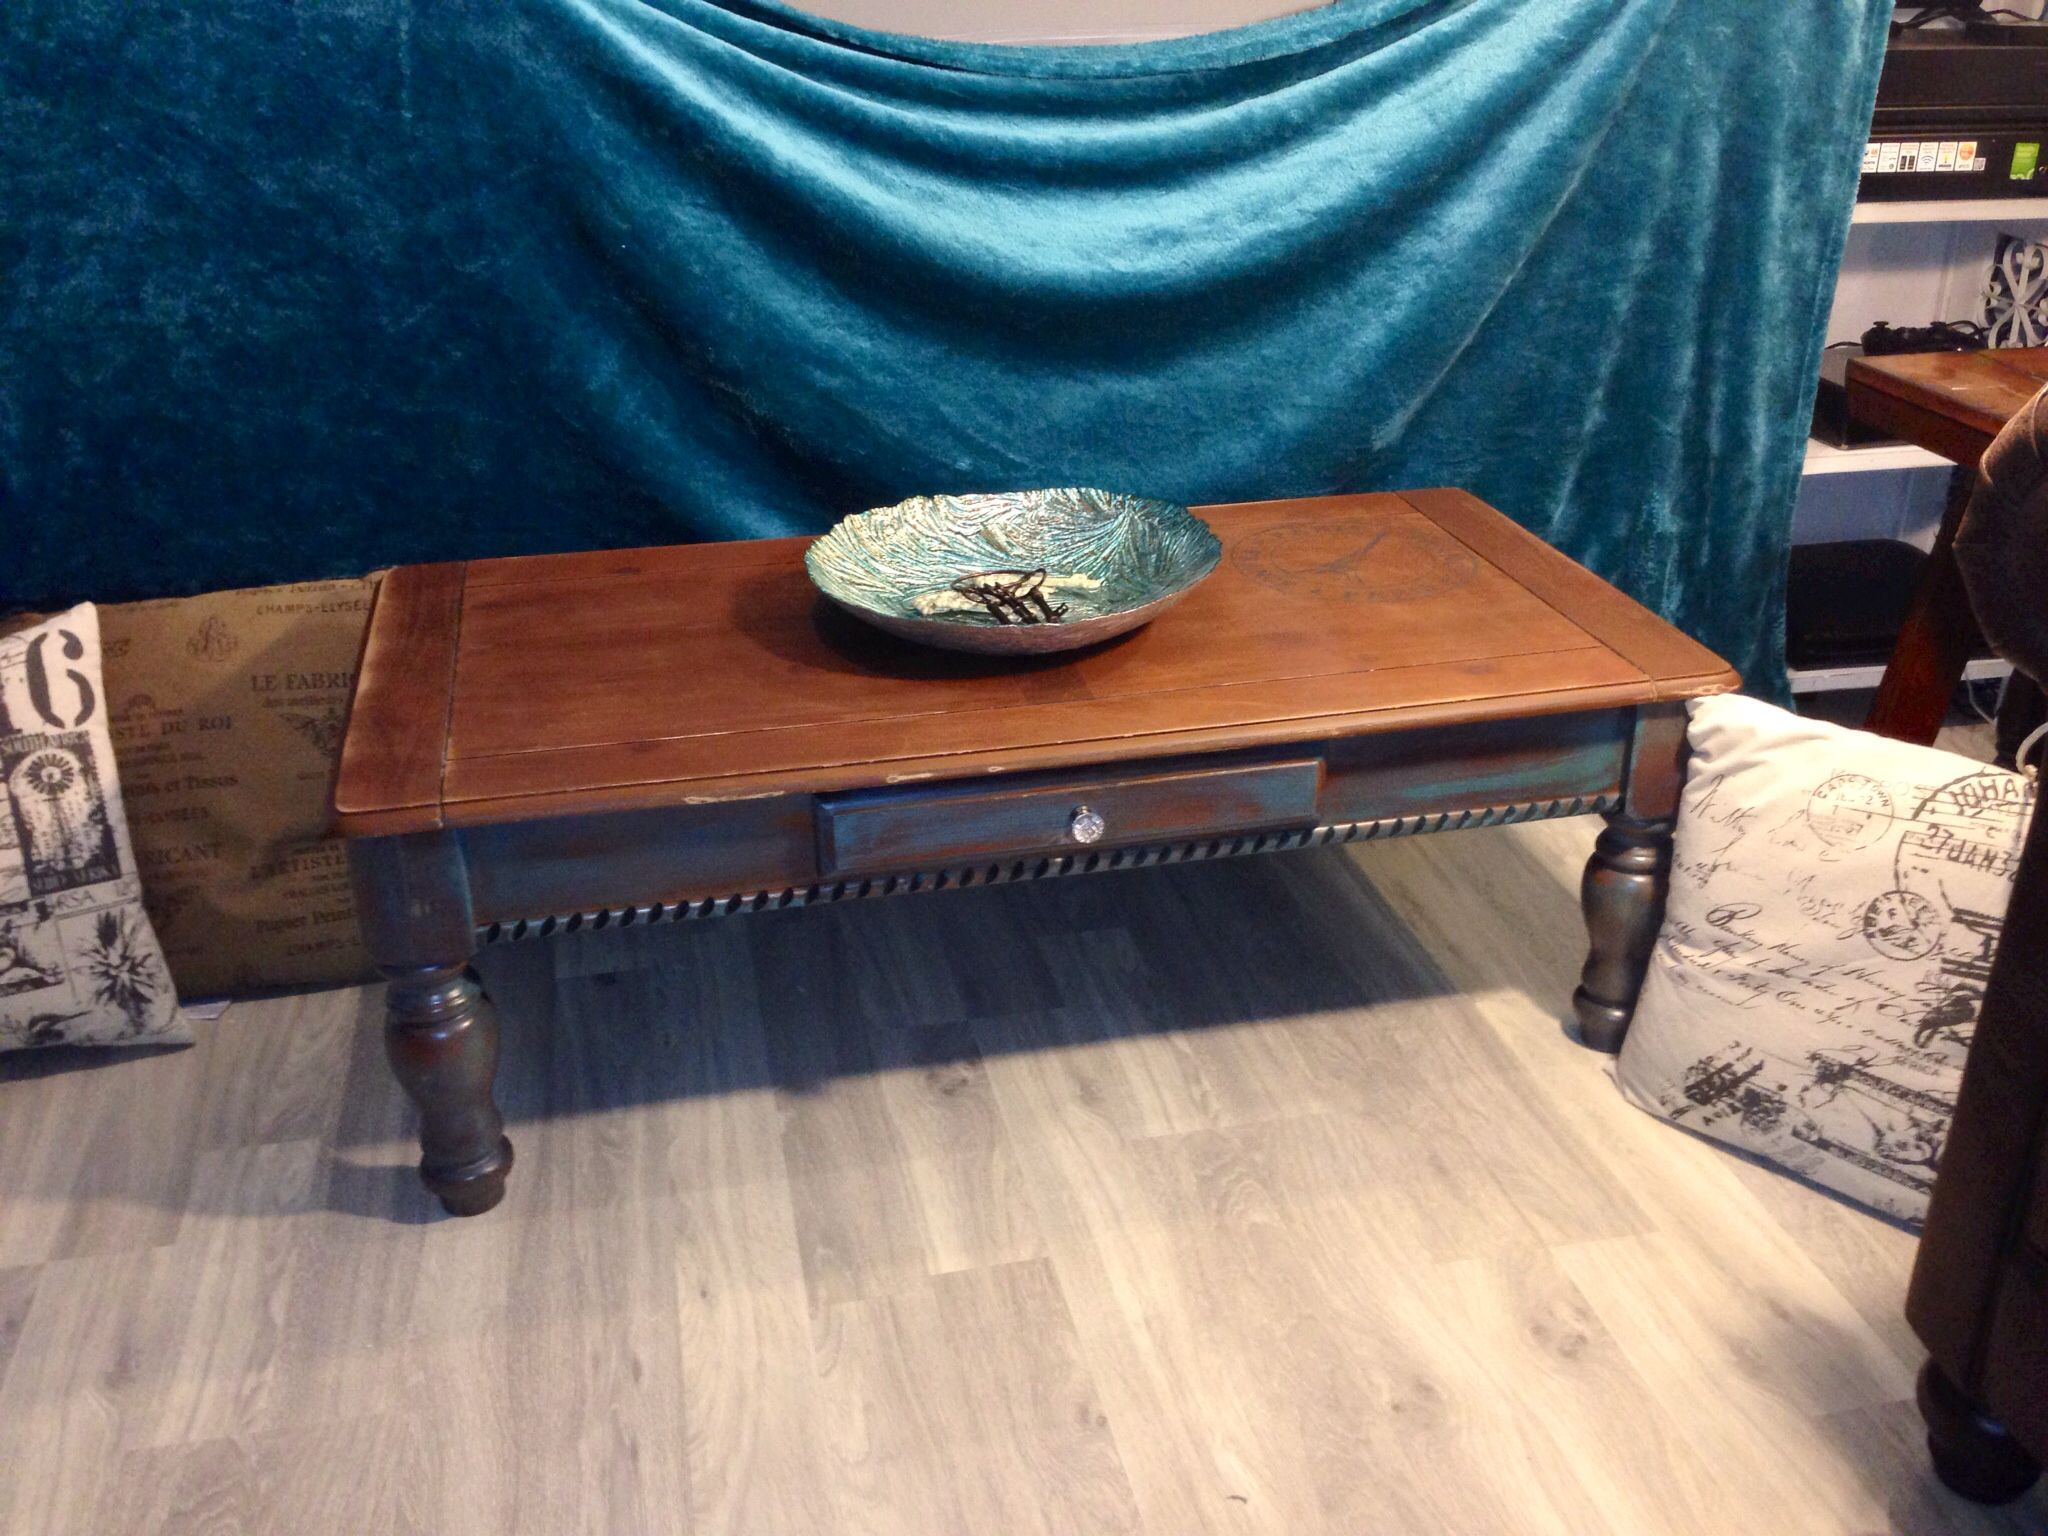 This Is An Extremely Heavy And Sturdy Solid Wood Coffee Table. It Has A Very